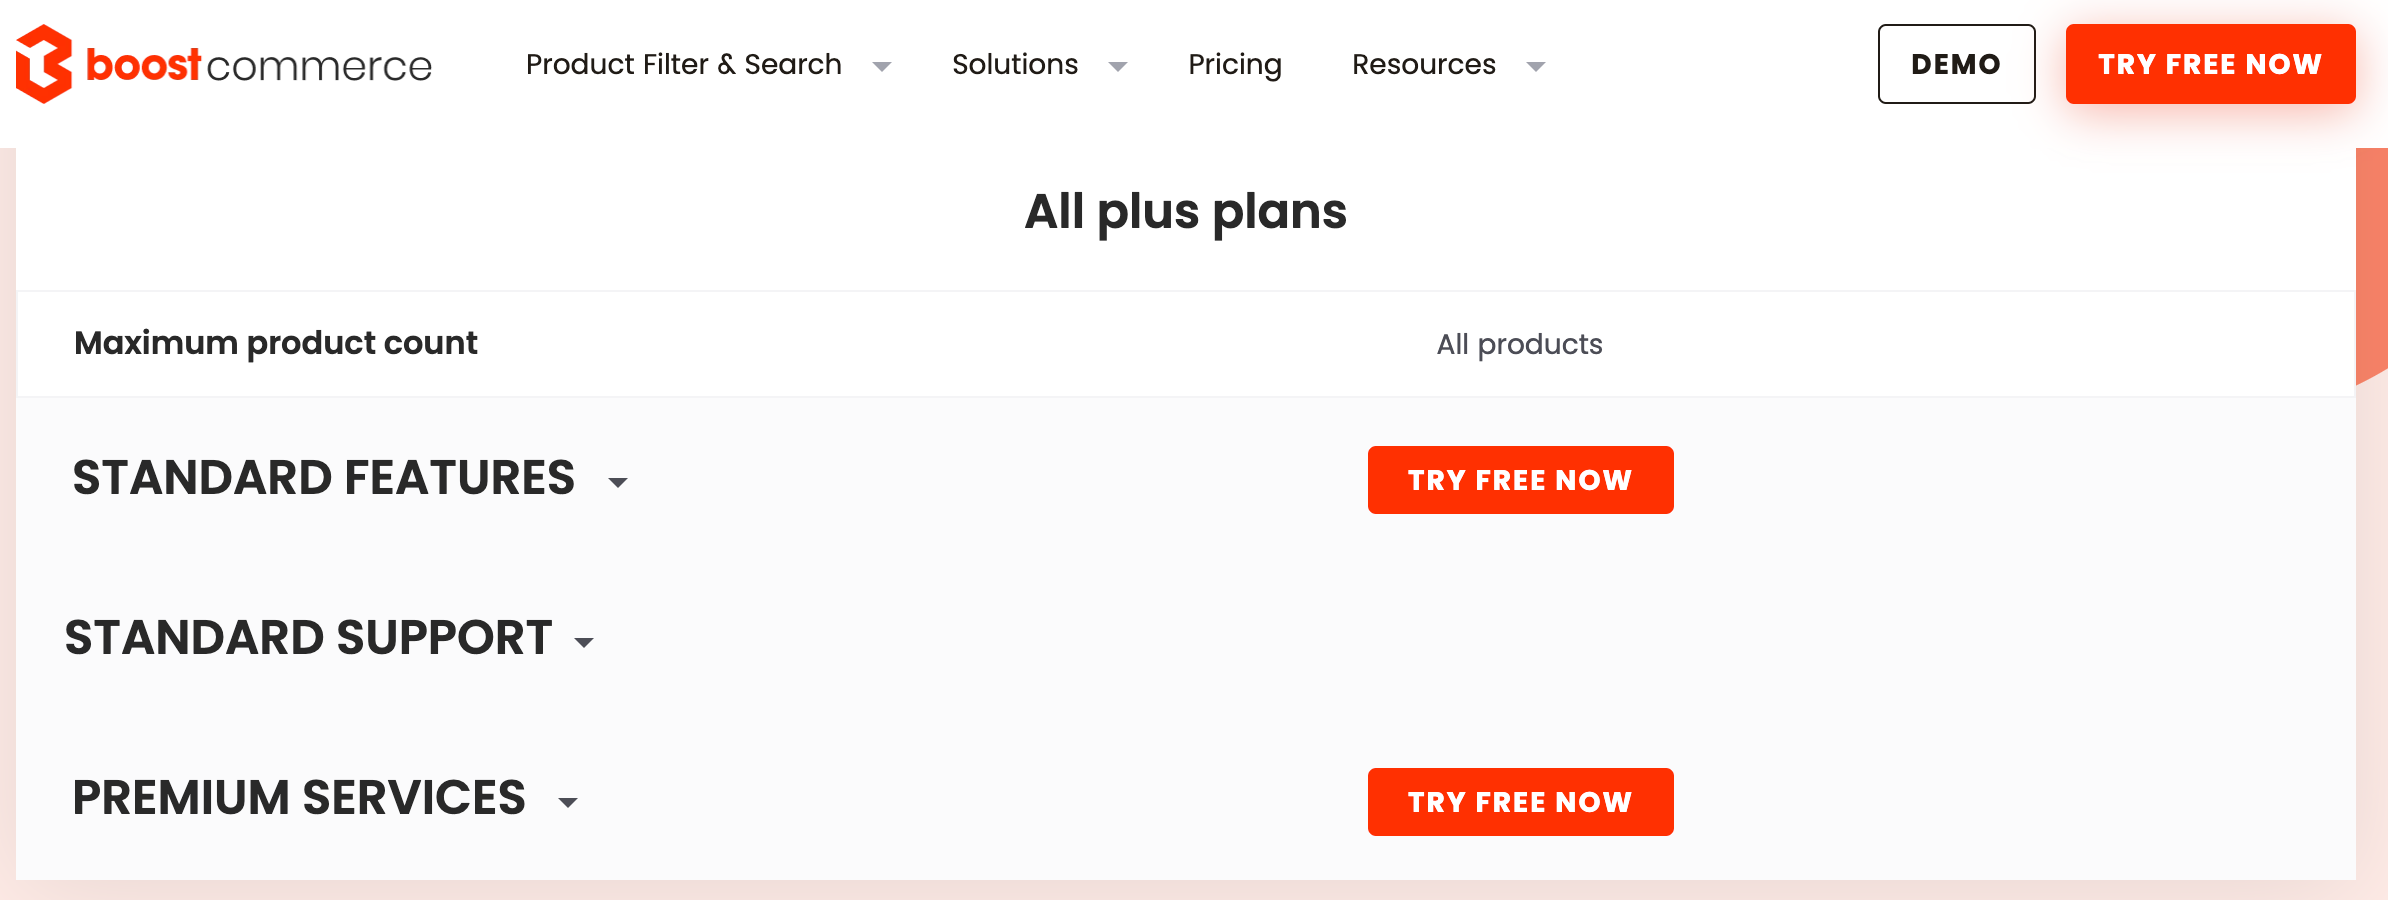 Boost Product Filter & Search introduces new plans for Shopify Plus